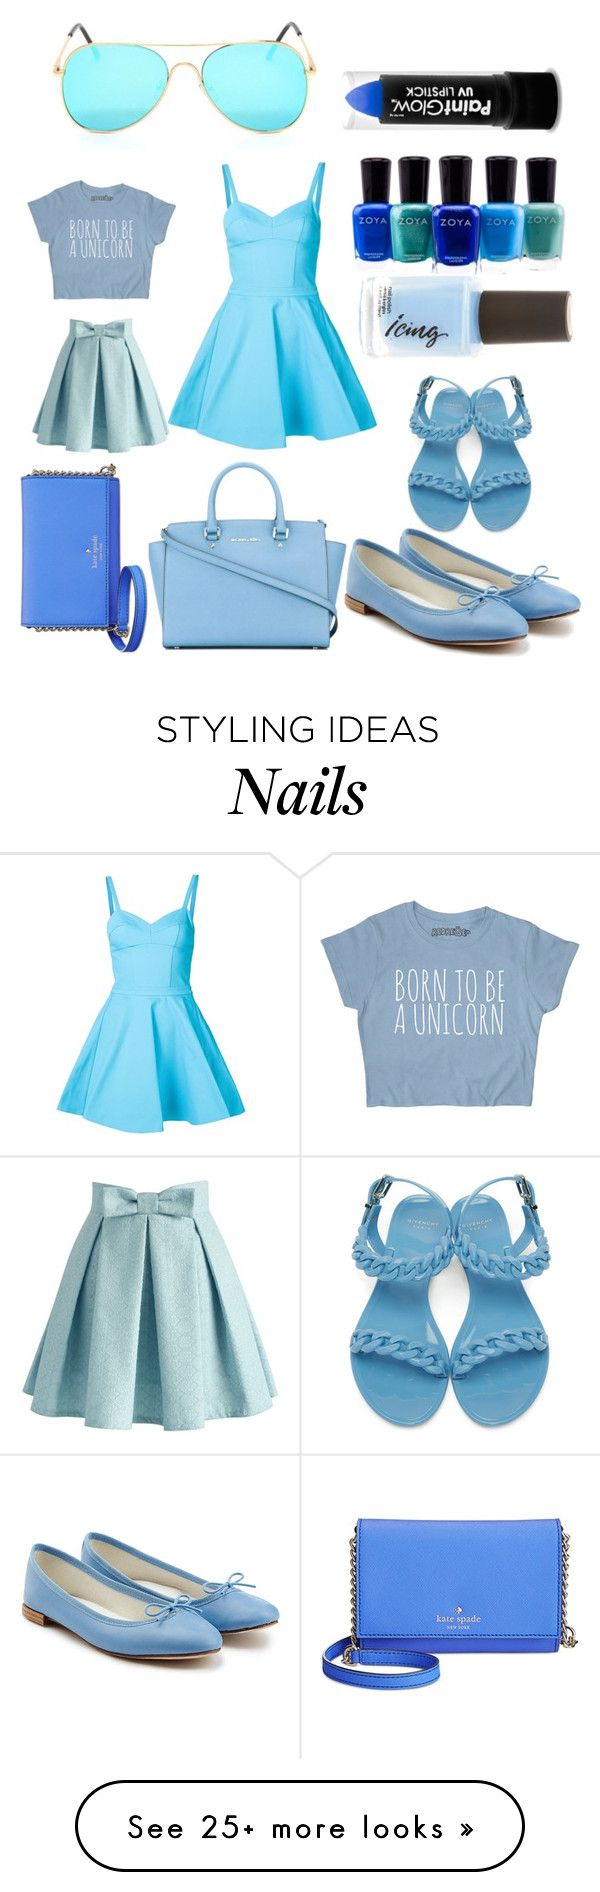 """Blue"" by karizzmarocks on Polyvore featuring Jeremy Scott, Zoya, Givenchy, Repetto, MICHAEL Michael Kors, Kate Spade and Chicwish"